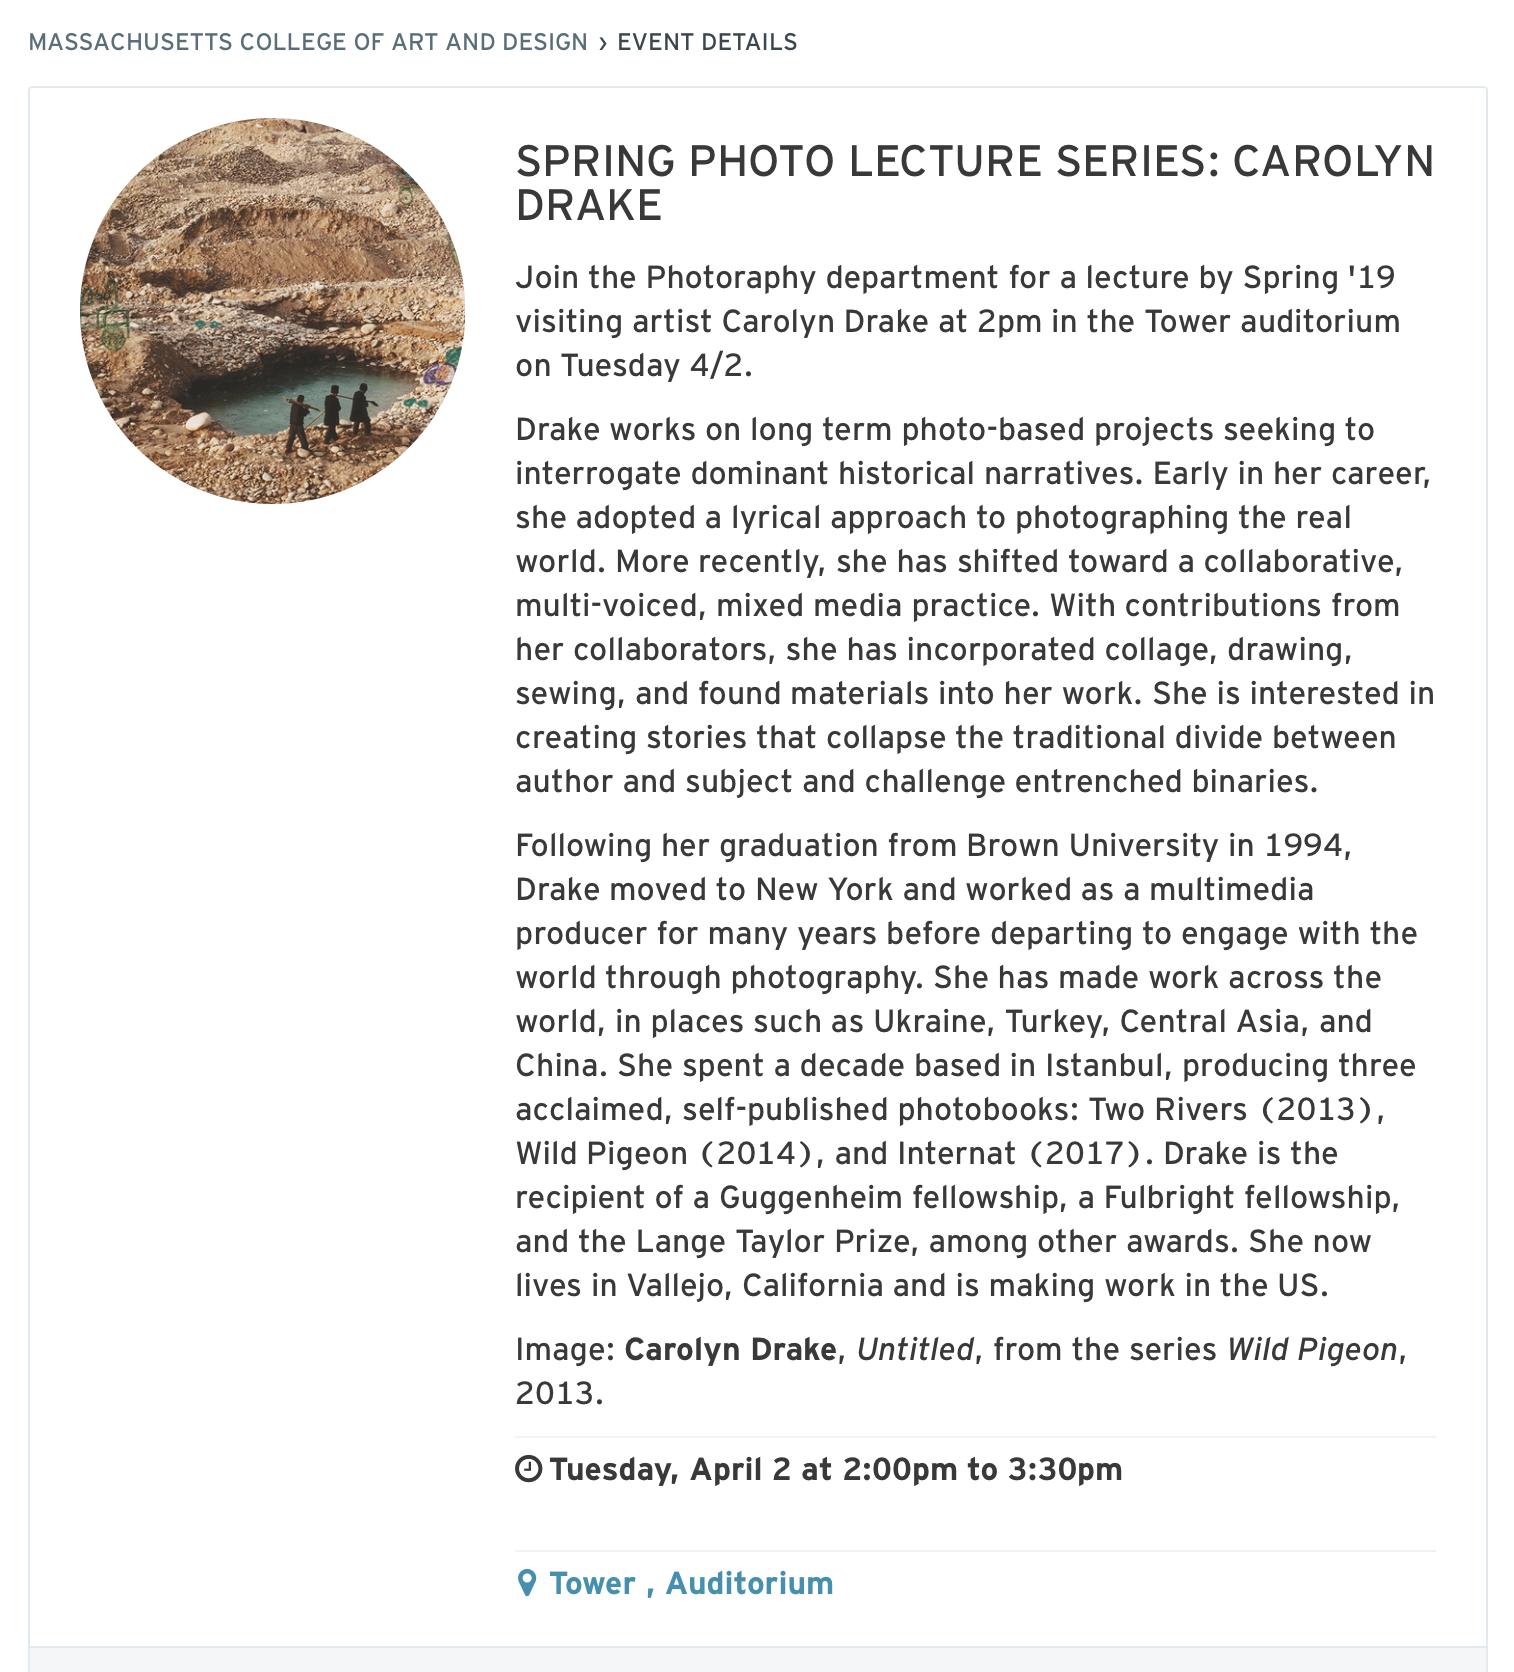 MassArt Lecture  - Giving a public lecture at Massachusetts College of Art and Design on April 2, 2019